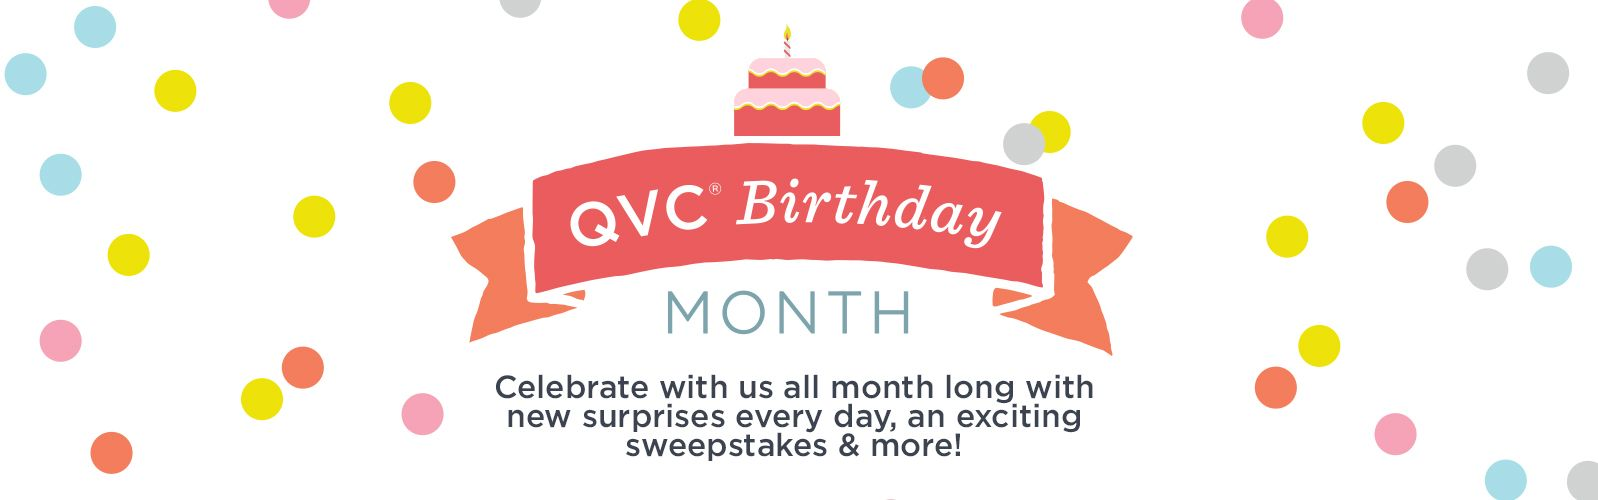 QVC Birthday Month.  Celebrate with us all month long with new surprises every day, an exciting sweepstakes & more!